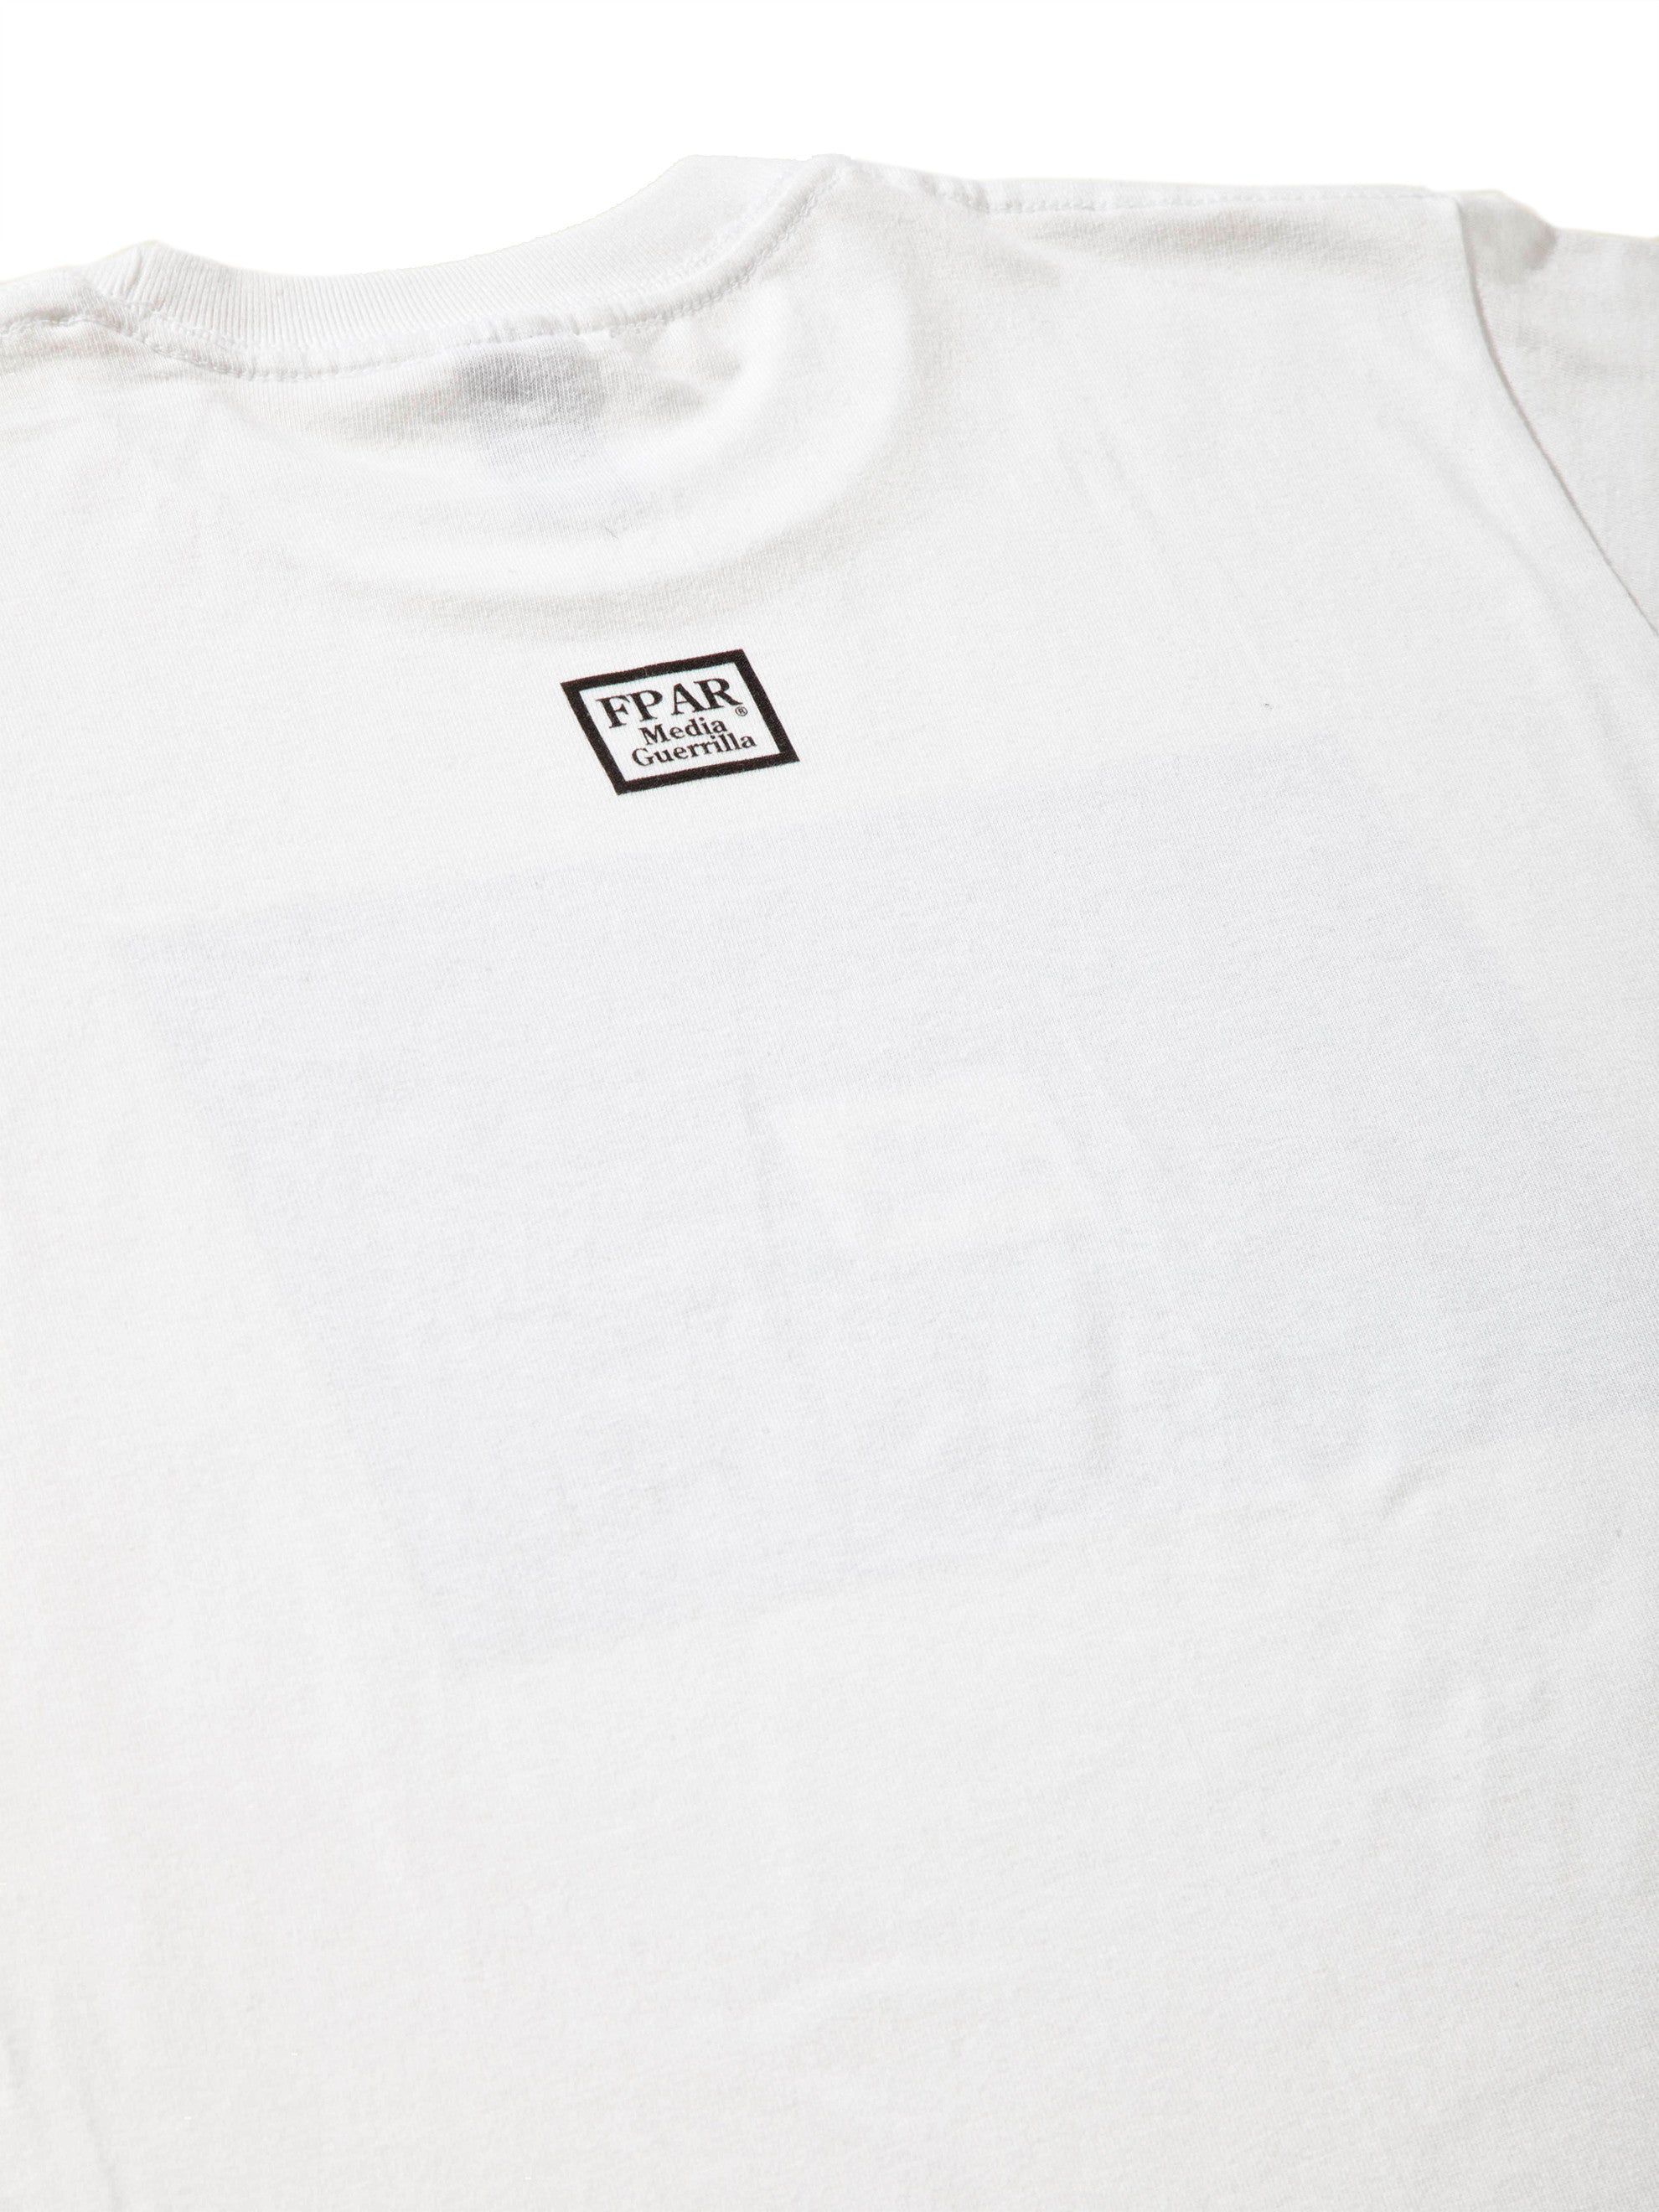 White Doubt Everything T-Shirt 7